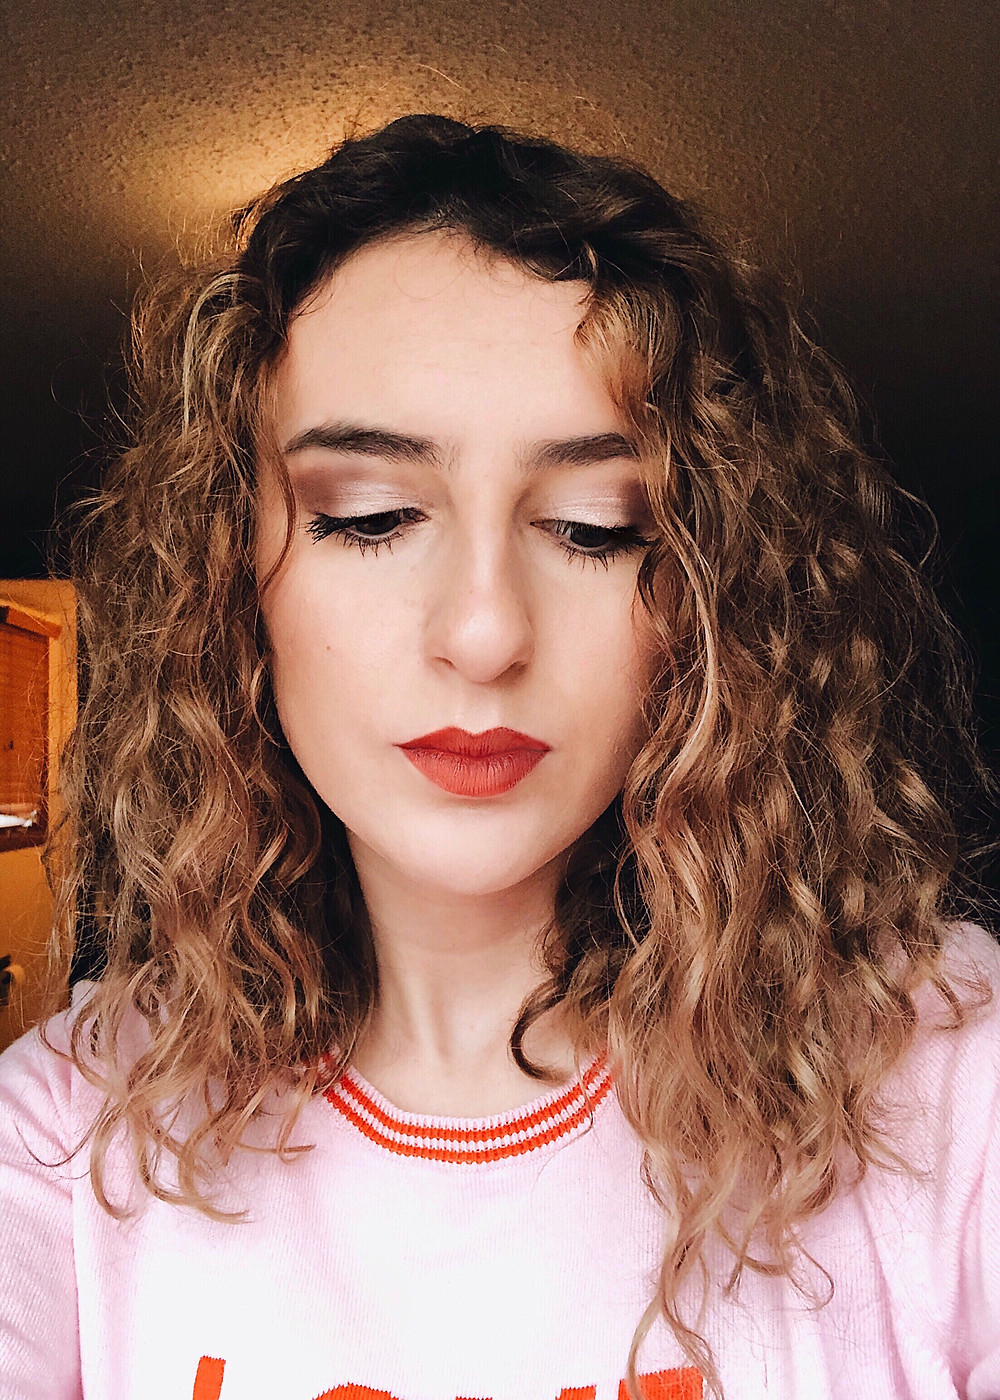 Abby Graf, curly hair, the bleached curl, Selfie